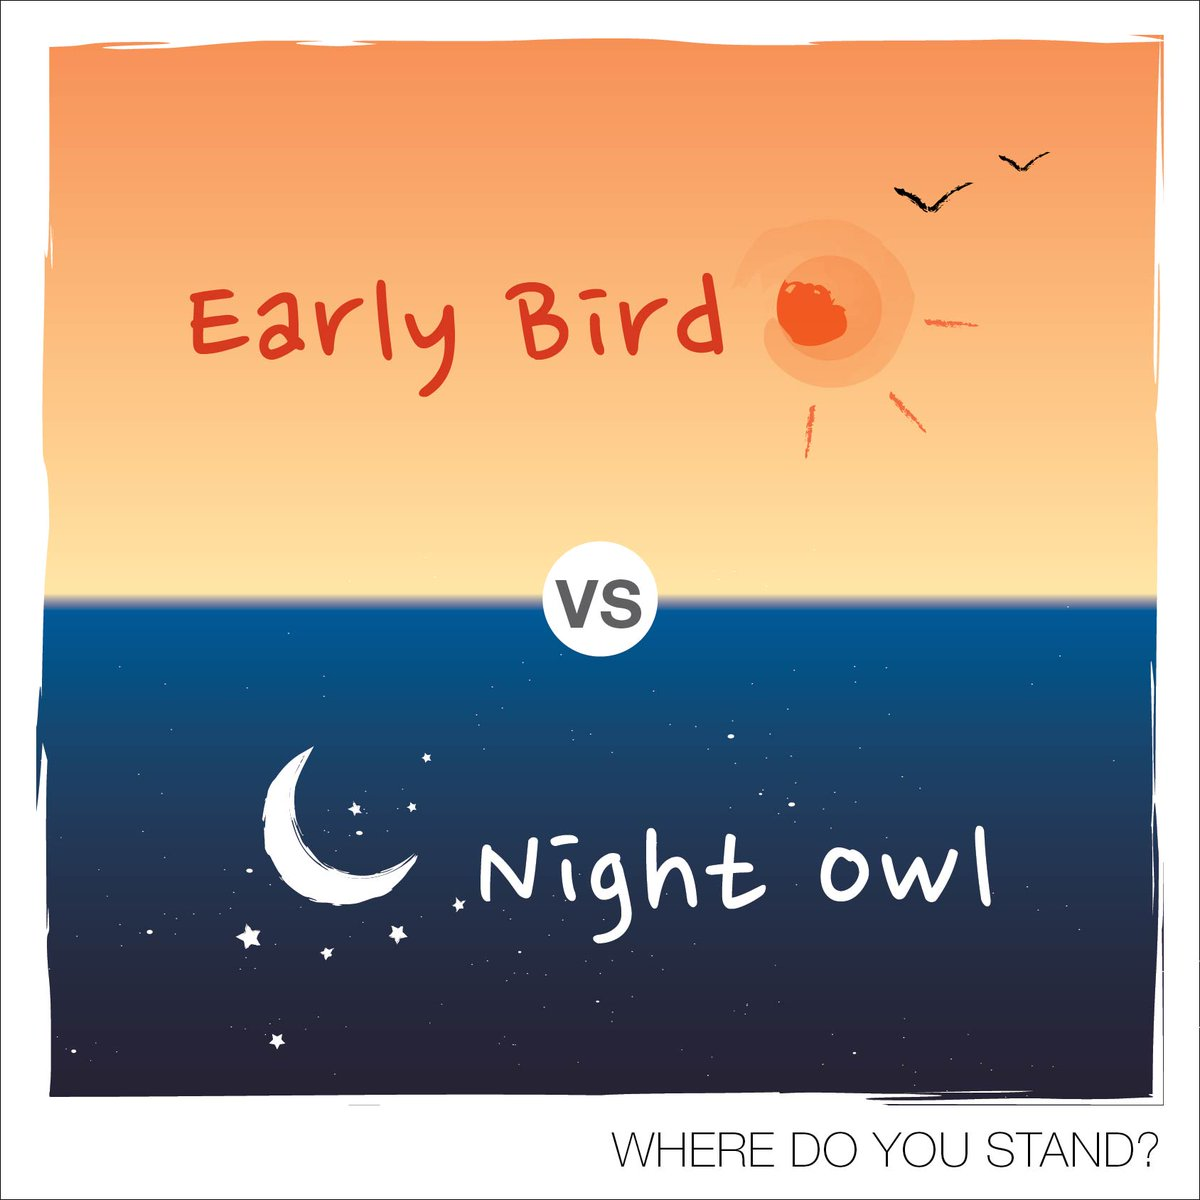 Why be an early bird when you can be a night owl?  Tag your friends or share to prove your point!  #instagood #photooftheday #happy #instadaily #friends #repost #fun #style #smile #food #instalike #travel #igers #tagsforlikes #follow4follow #nofilter #life https://t.co/ZXf627fBiN